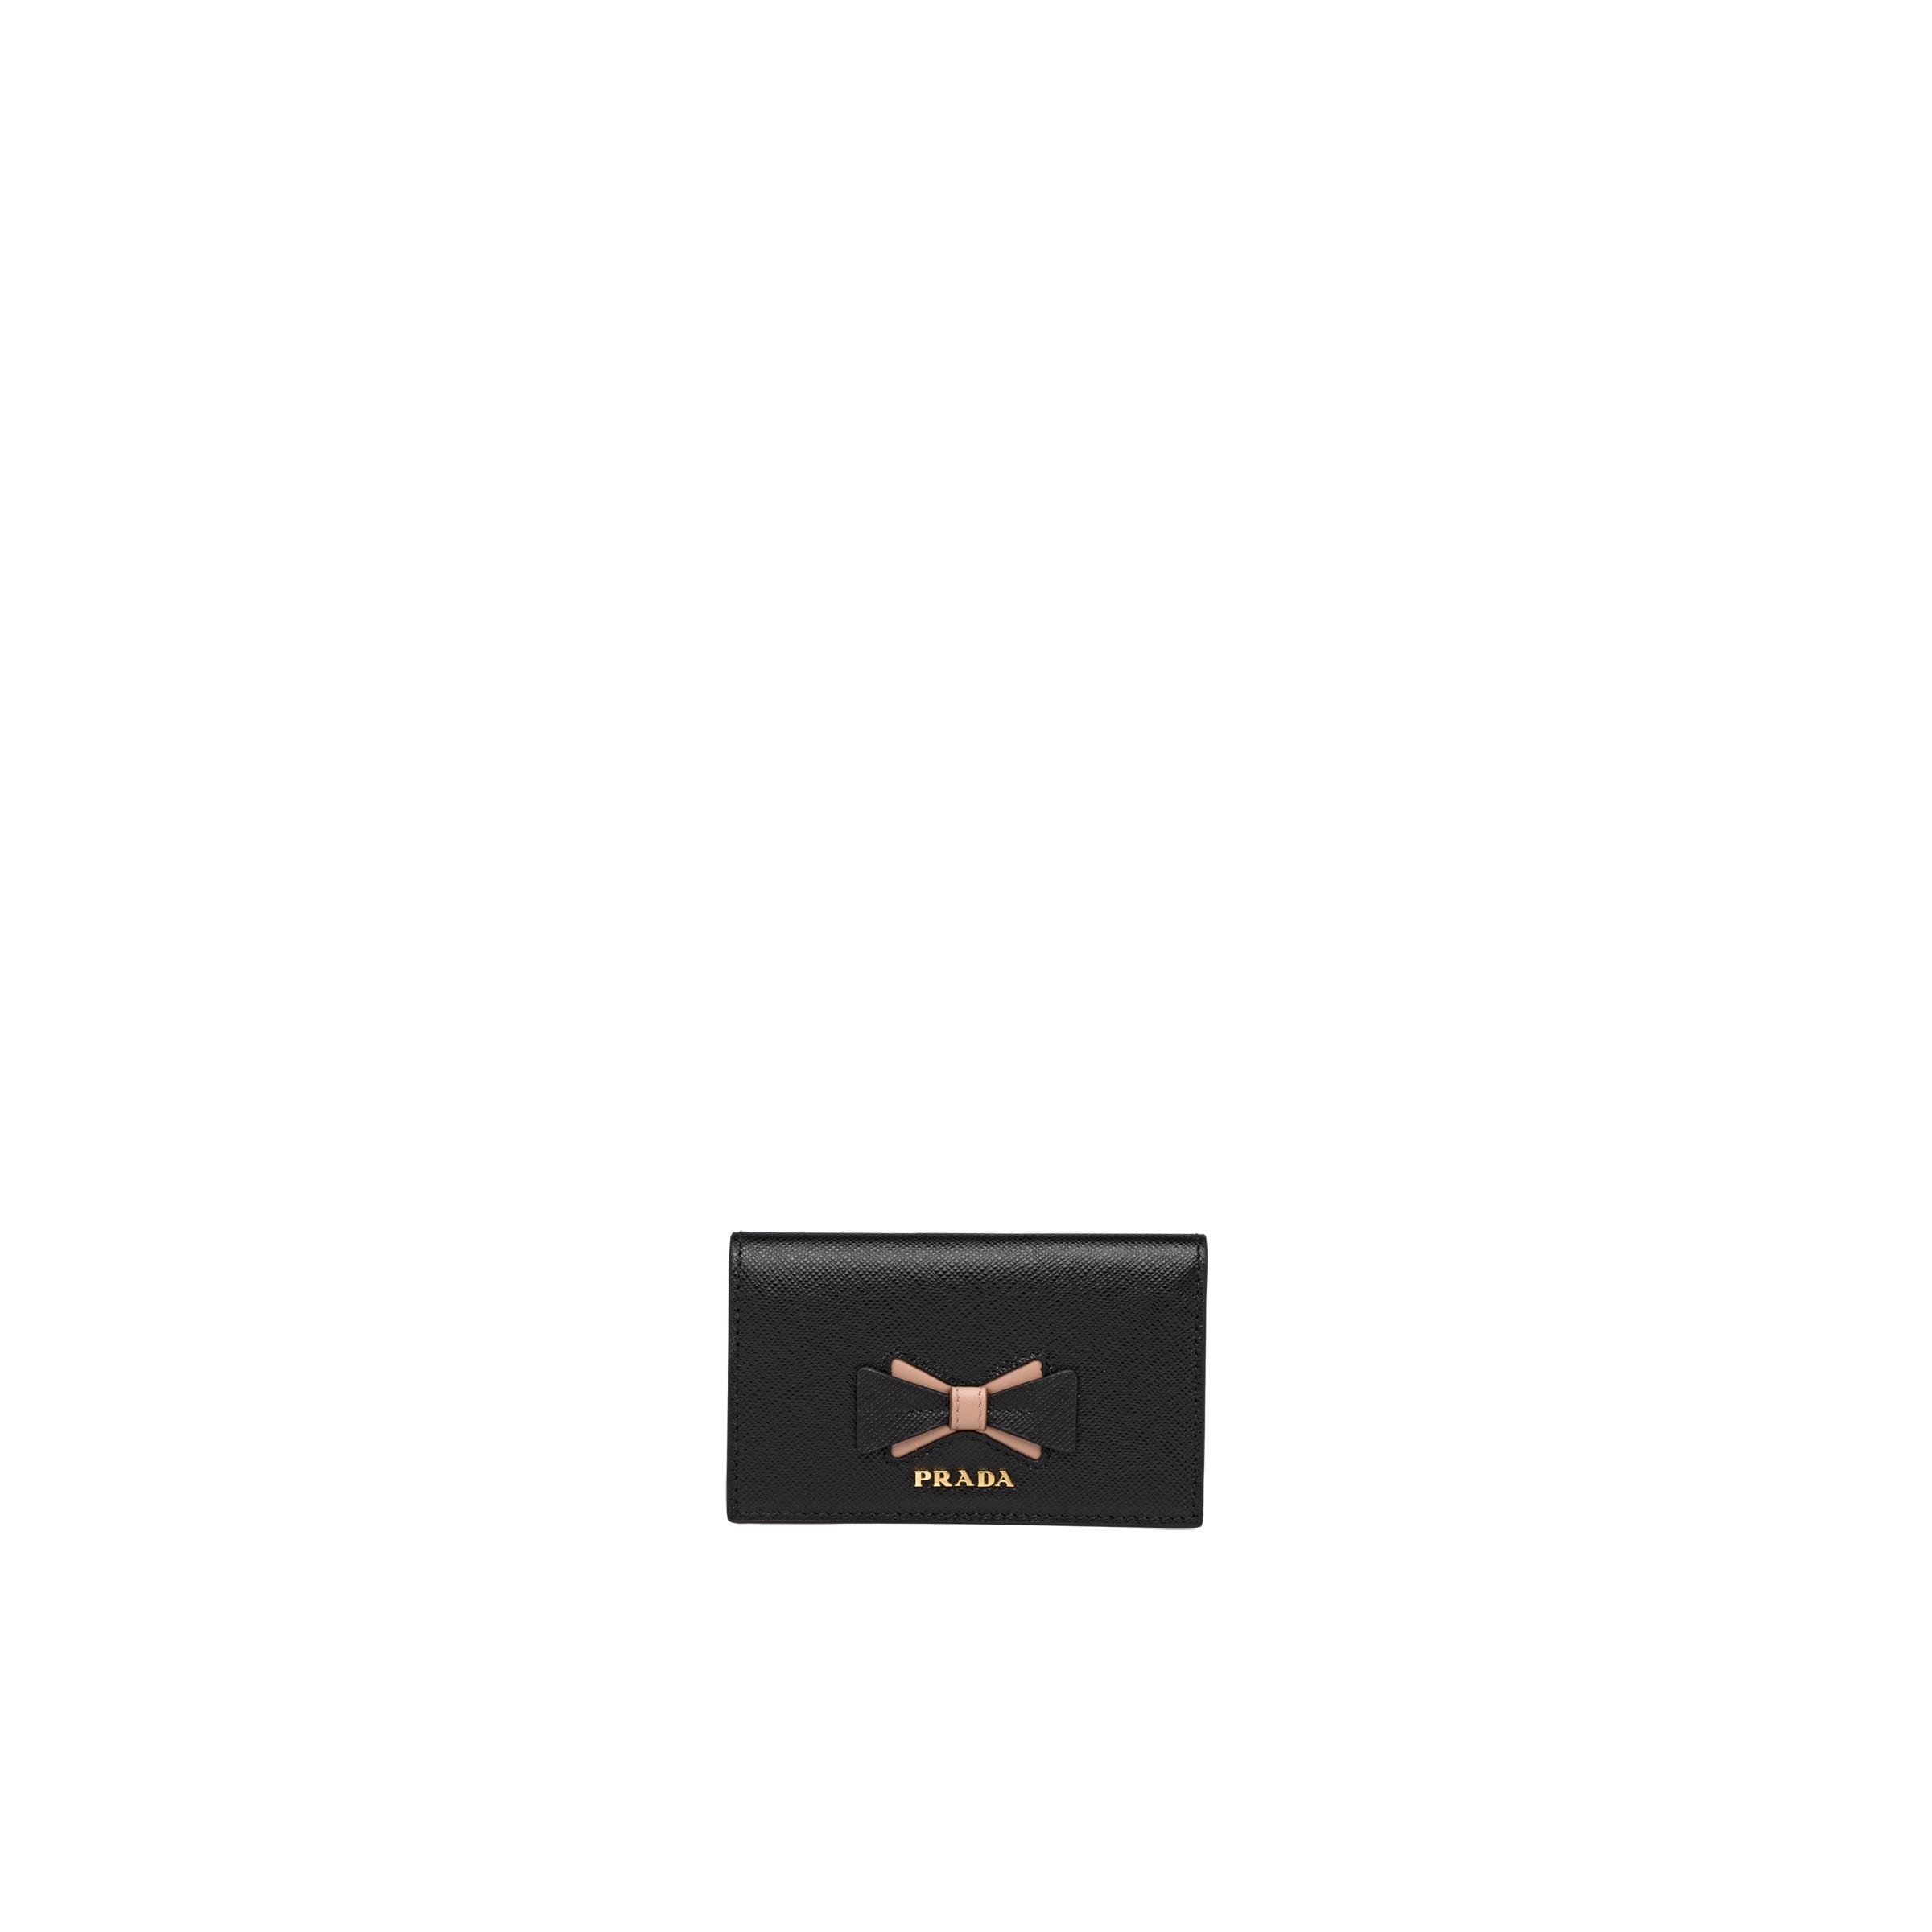 Saffiano Leather Card Holder With Bow Women Black/pale Pink